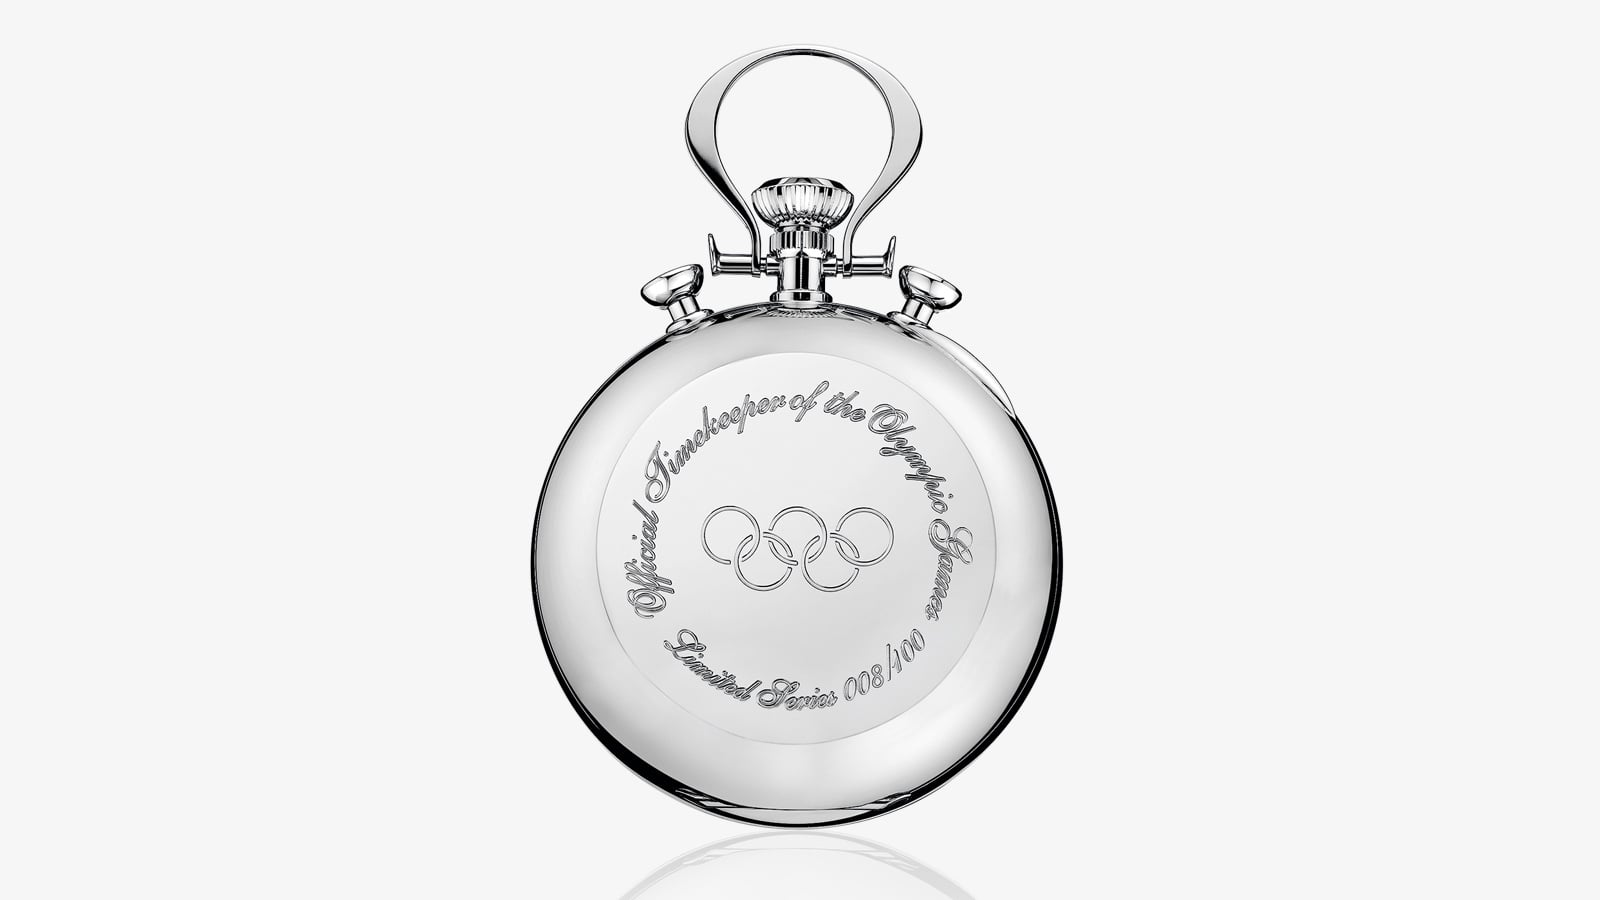 Specialities Olympic Pocket Watch Collection - Slide 3 - 2878 0d61a88f19